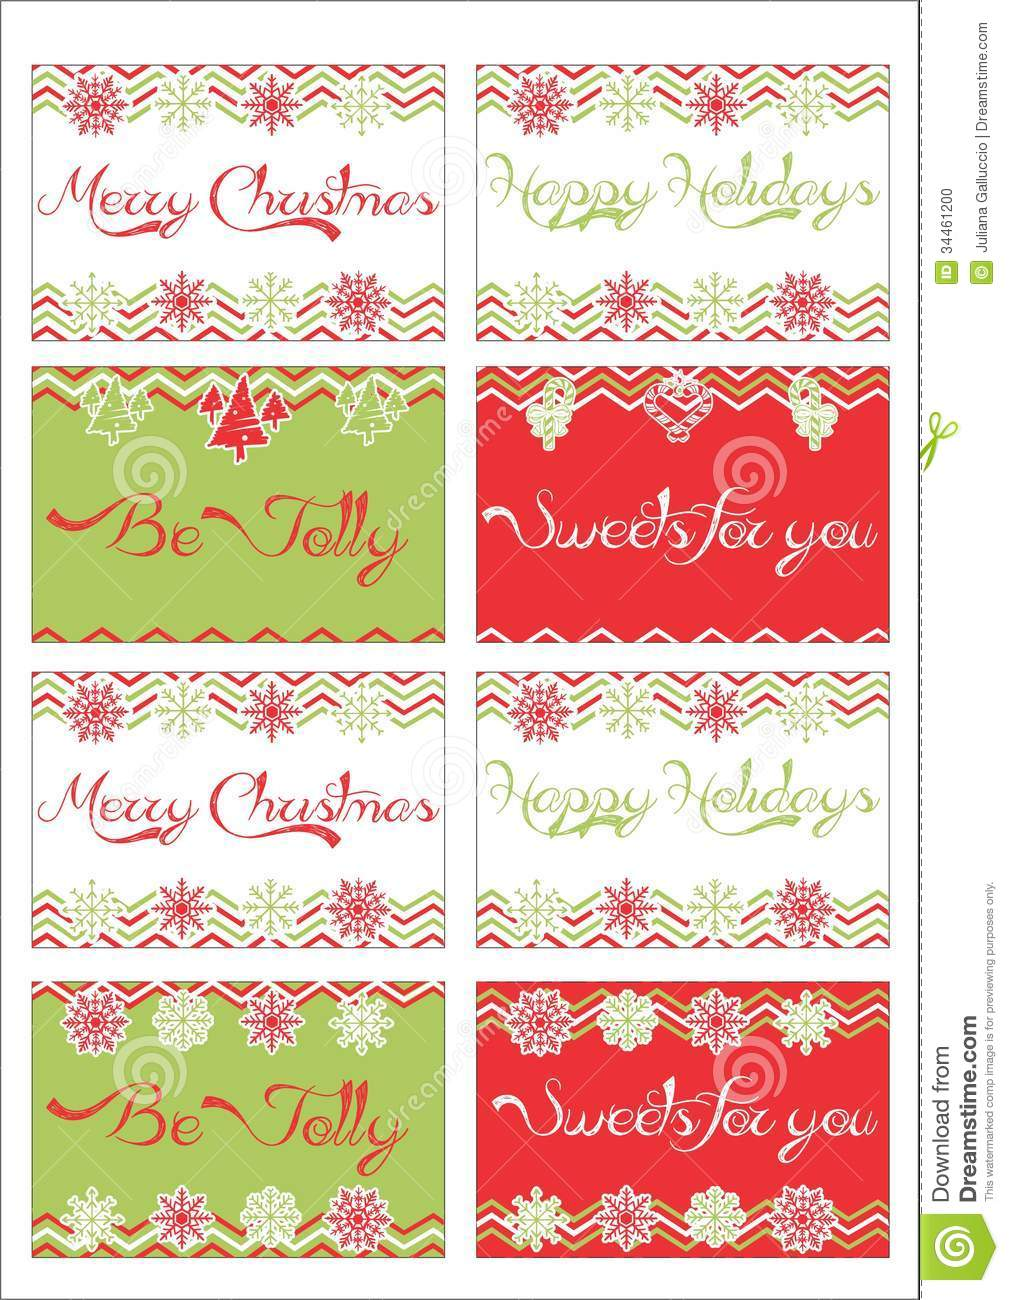 Christmas Gift Tags Stock Photo - Image: 34461200